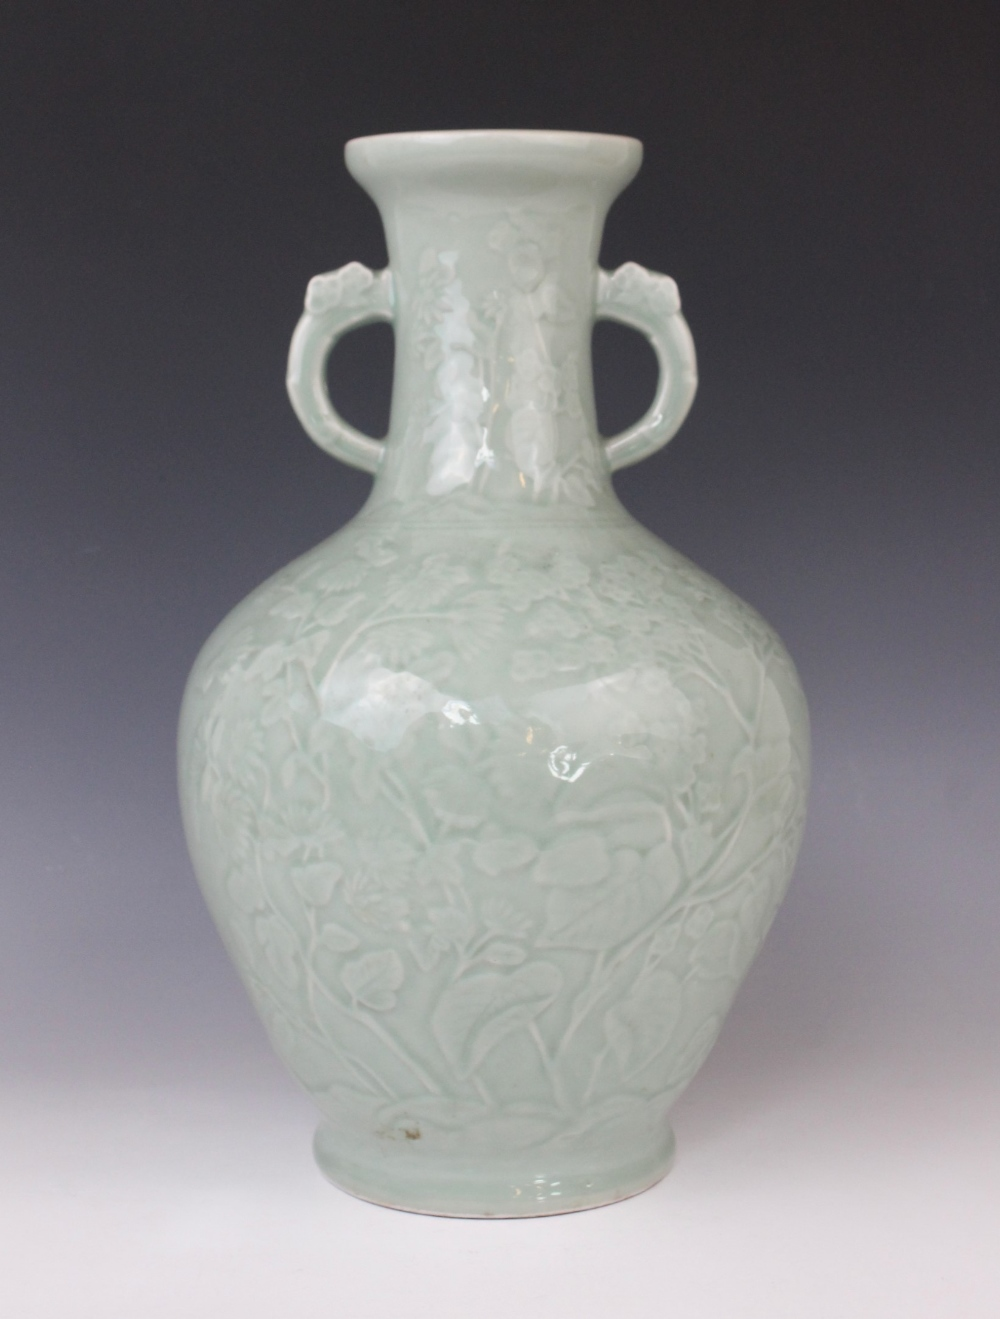 A Chinese Longquan celadon glazed vase, 20th century, the arrow-head type shaped twin handled vase